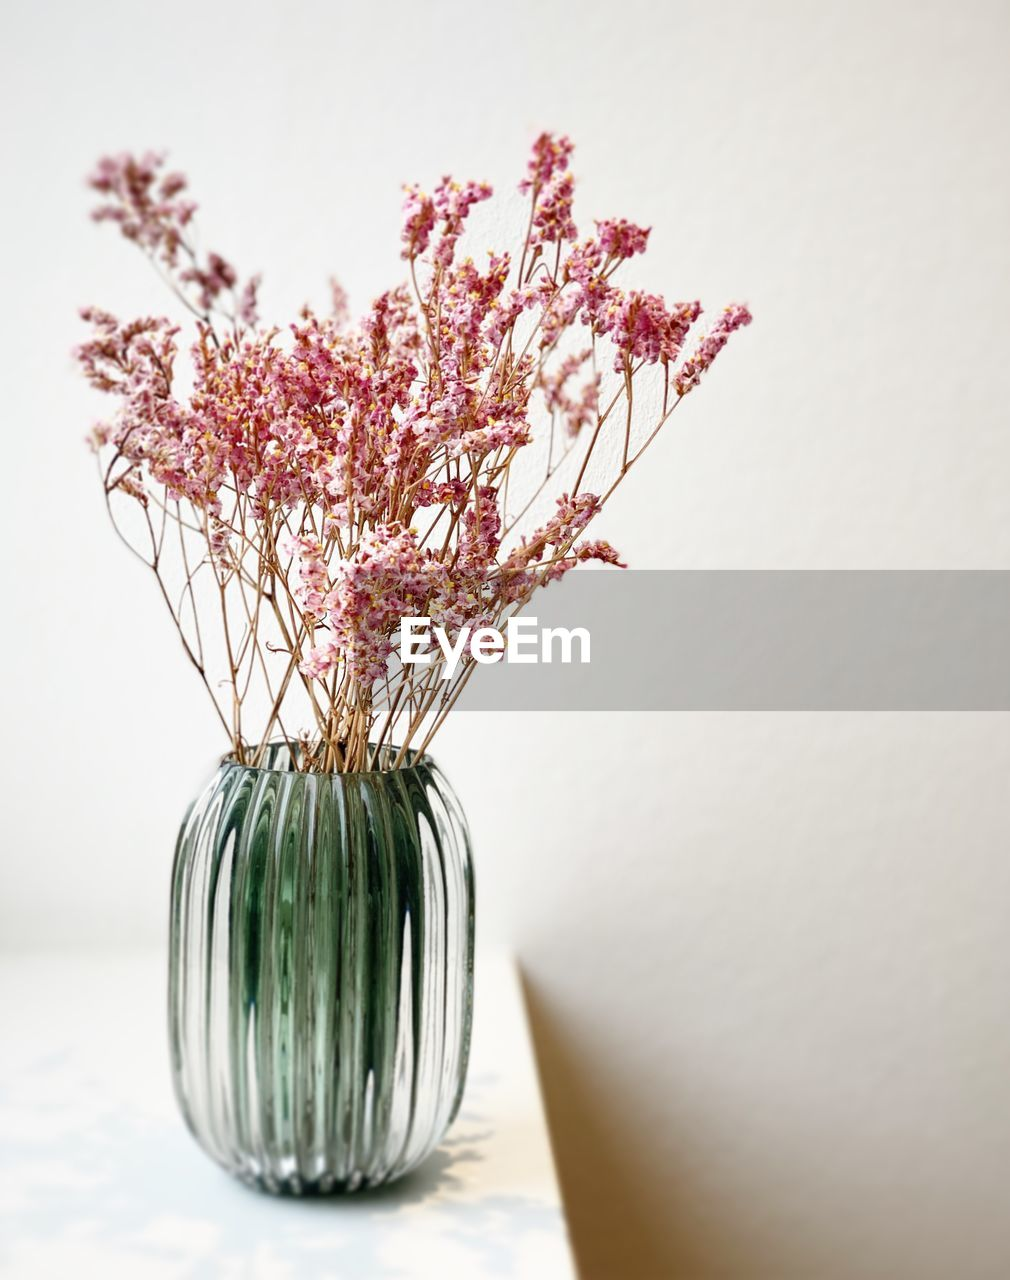 plant, indoors, flower, flowering plant, vase, freshness, still life, no people, fragility, close-up, beauty in nature, vulnerability, table, nature, decoration, copy space, white background, pink color, flower head, container, flower arrangement